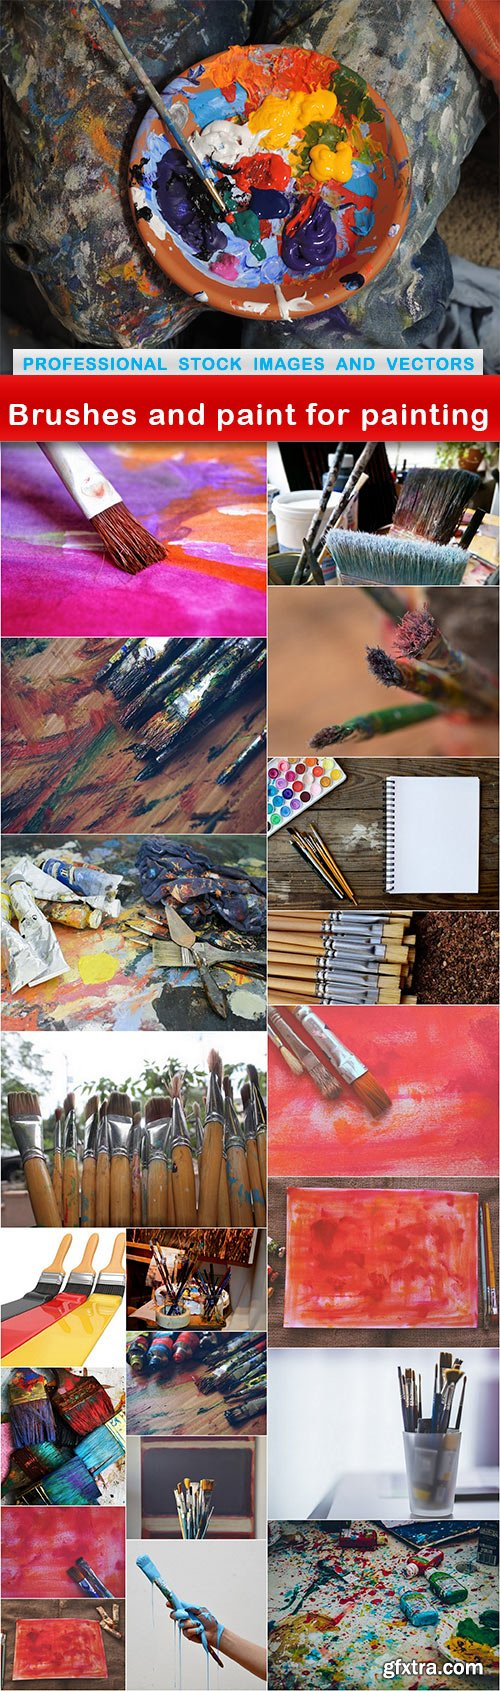 Brushes and paint for painting - 21 UHQ JPEG